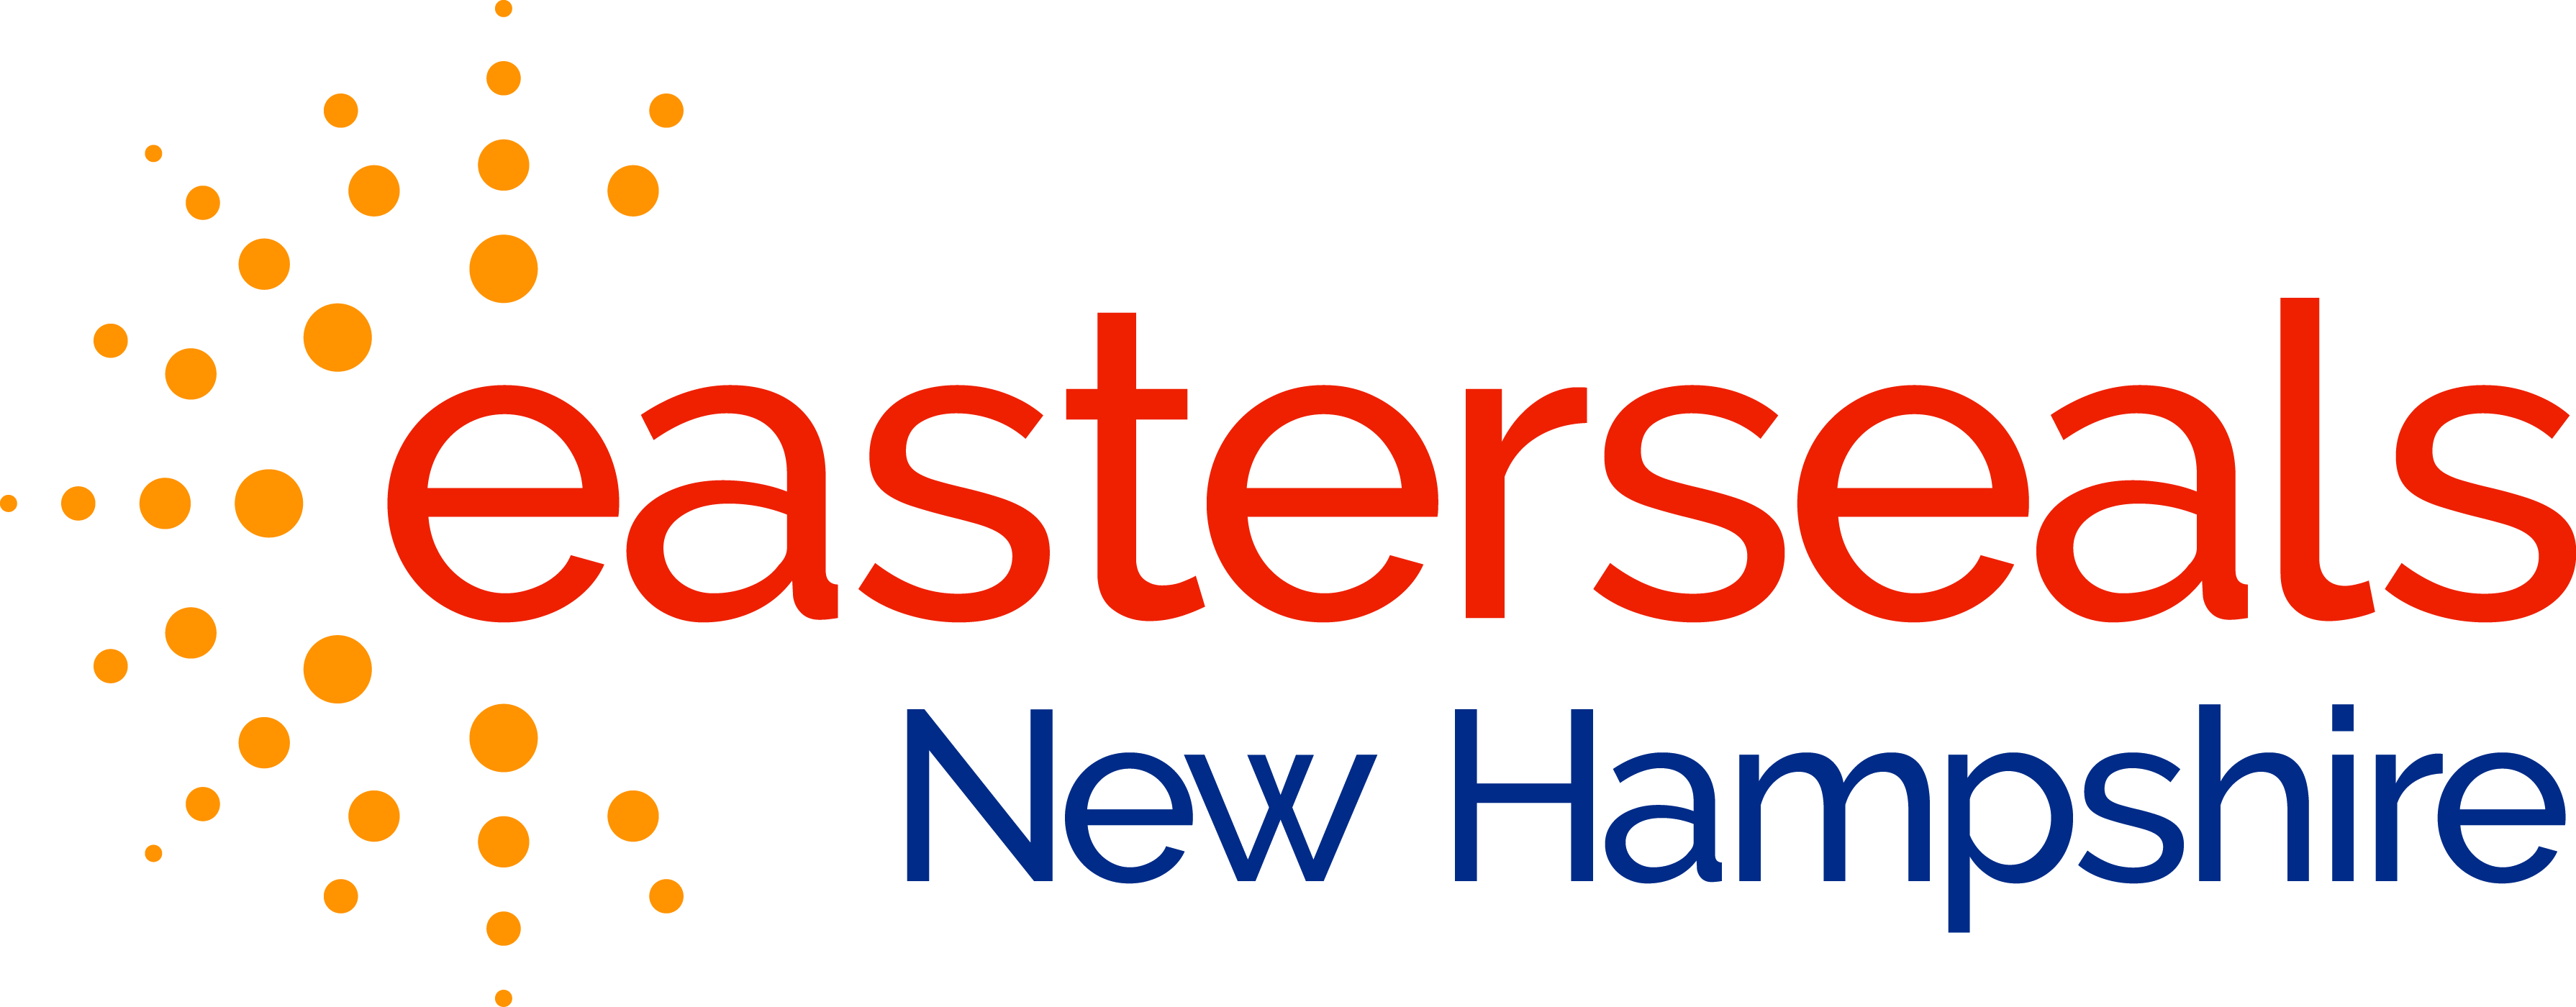 Specialty Food Producer Stonewall Kitchen Partners With Easterseals Nh And Its Employment